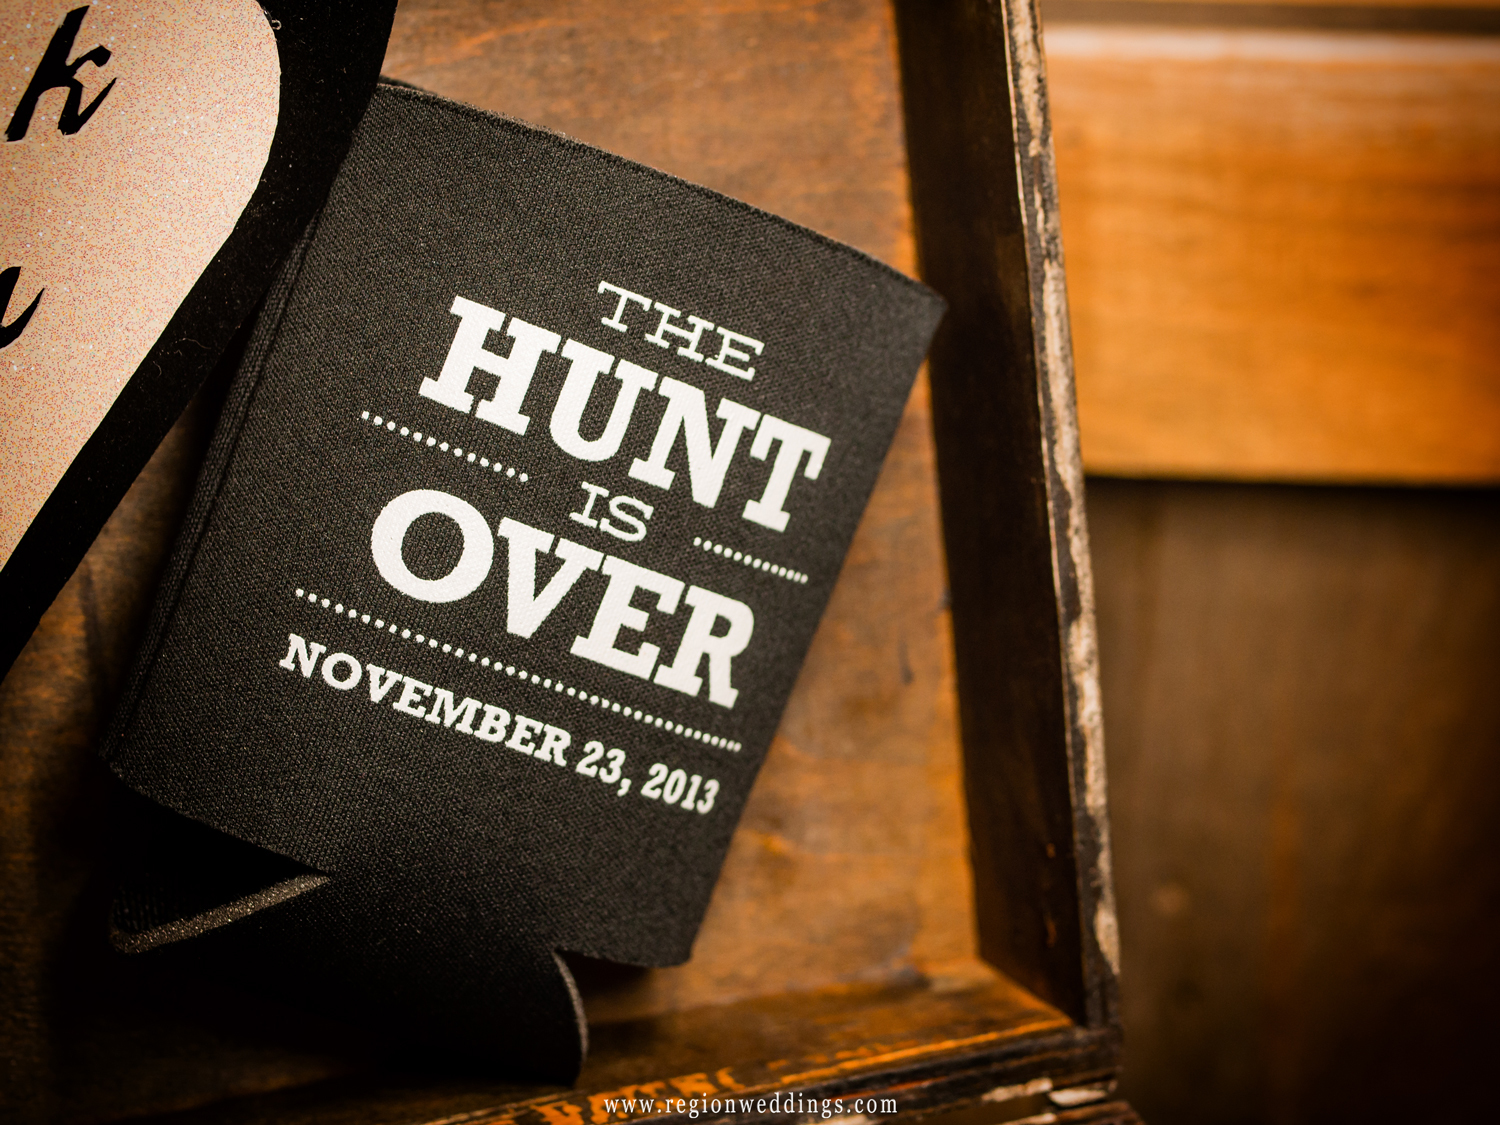 Hunting and fishing themed wedding decorations.